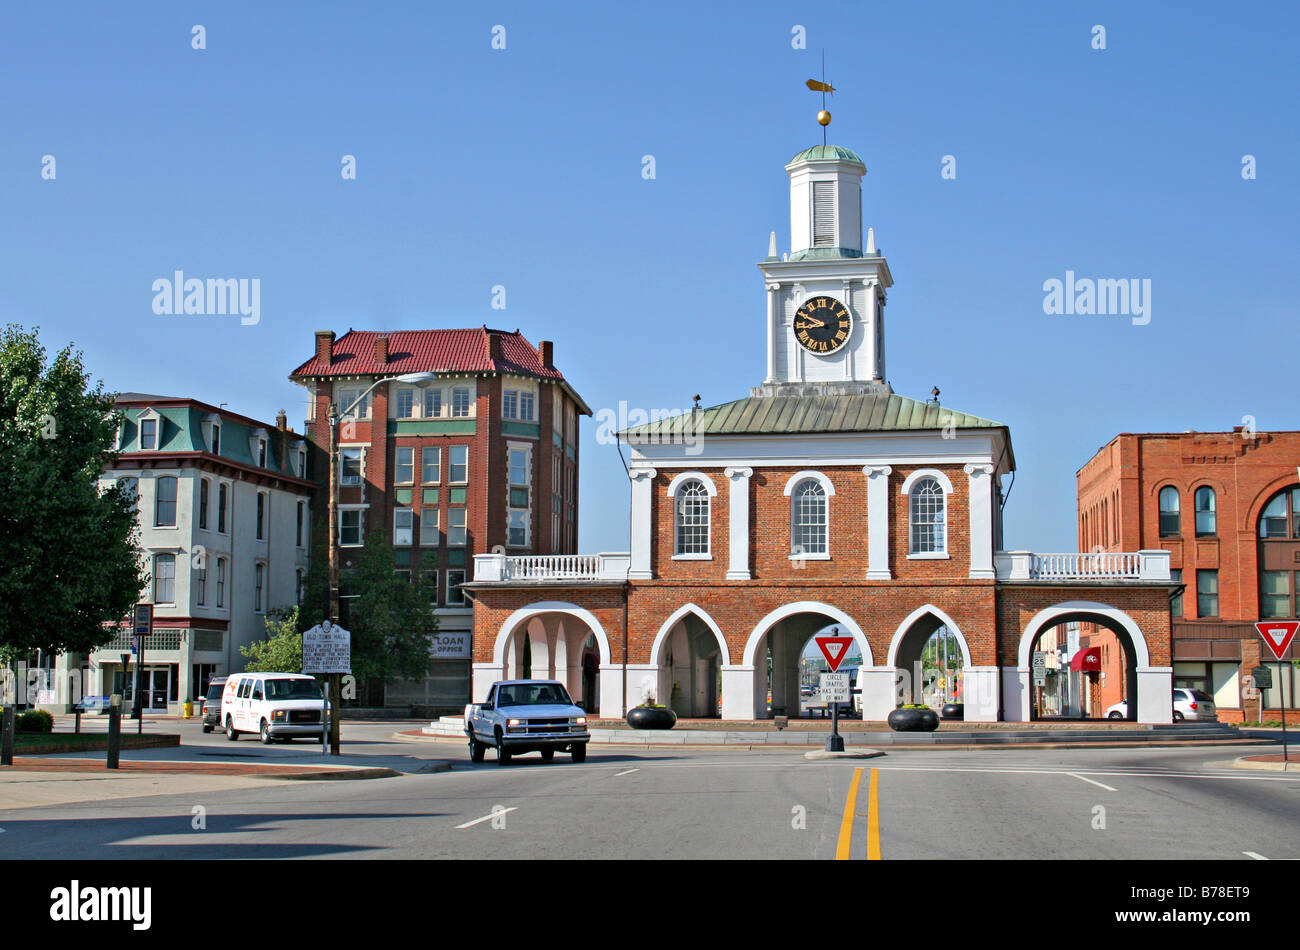 Historic Old Market House in Fayetteville North Carolina Stock Photo